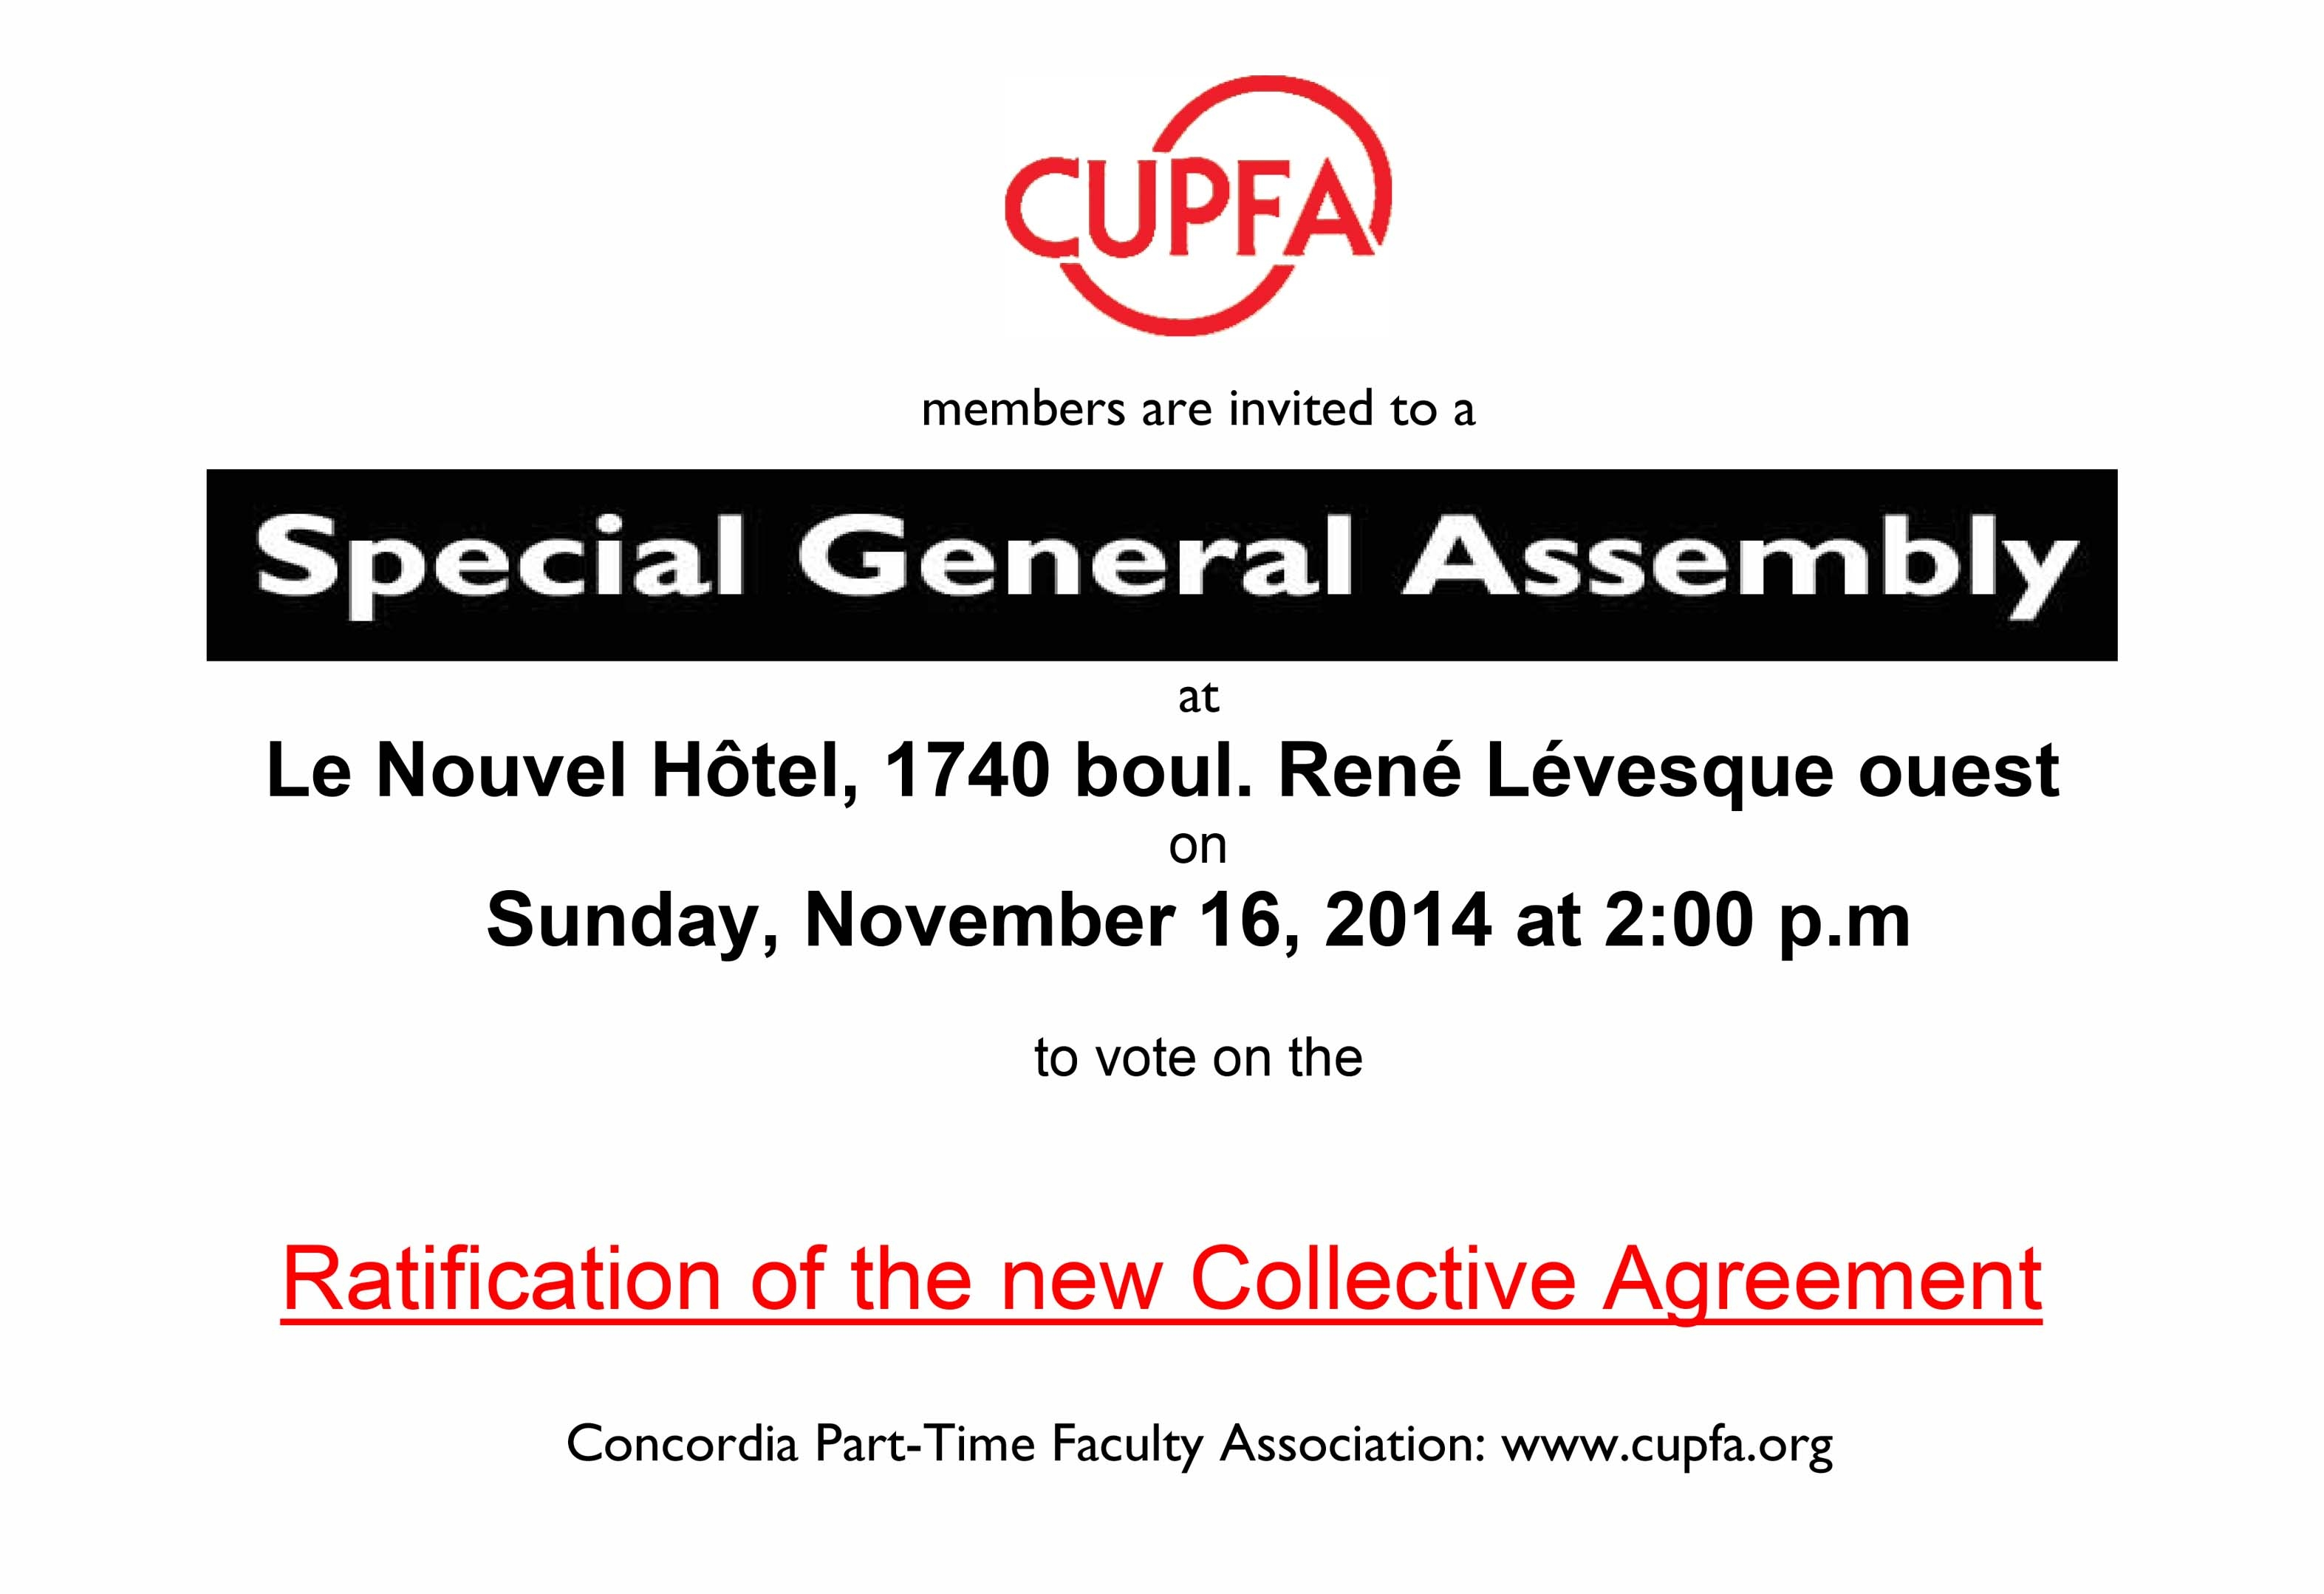 Special General Meeting For New Collective Agreement Ratification